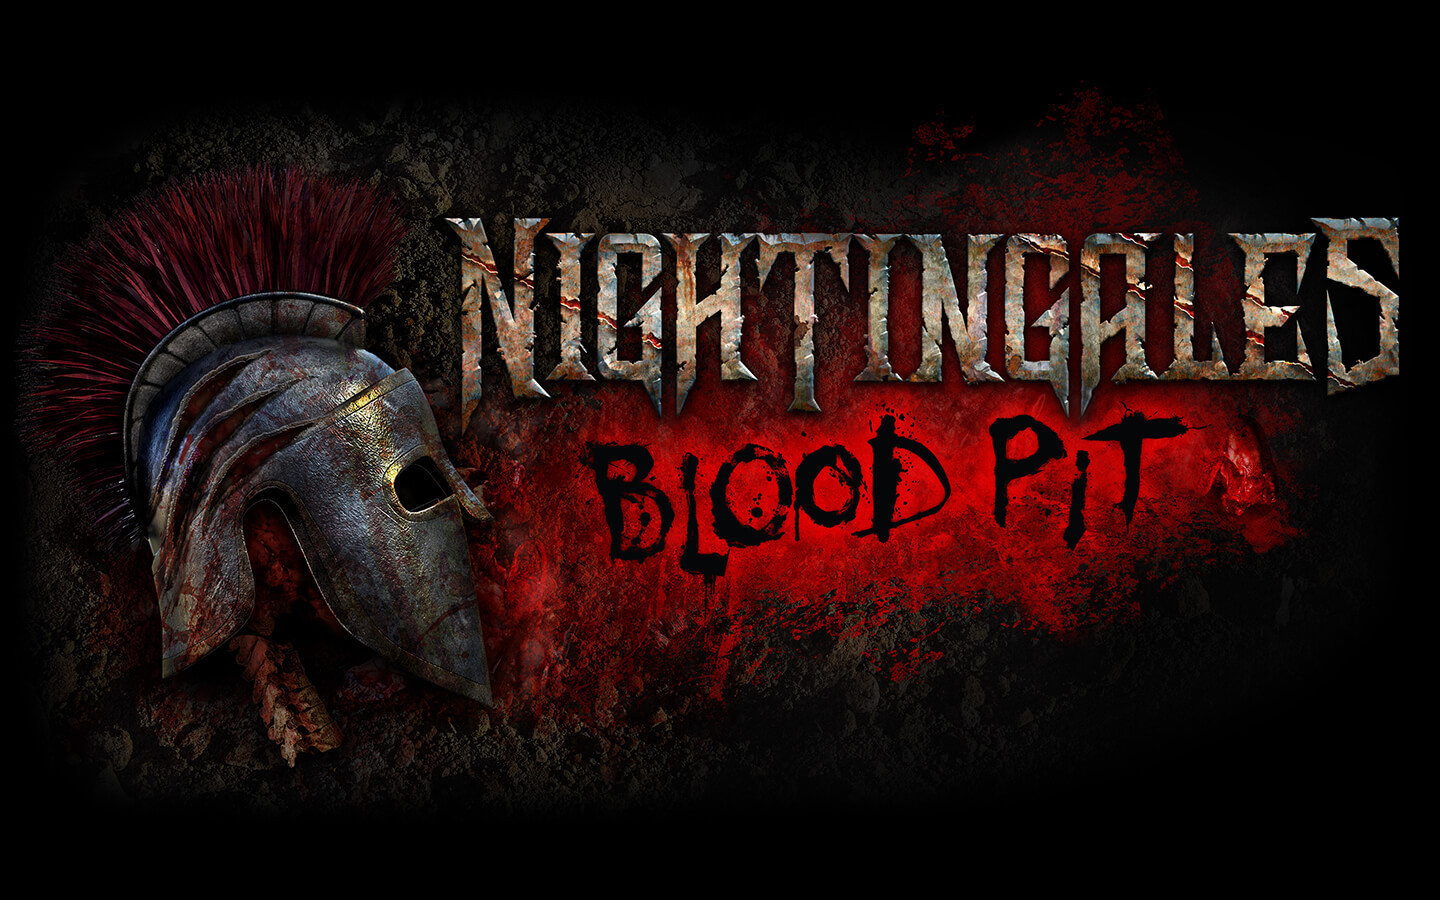 Haunted Houses at Halloween Horror Nights 2019 | HHN Houses | Nightingales: Blood Pit